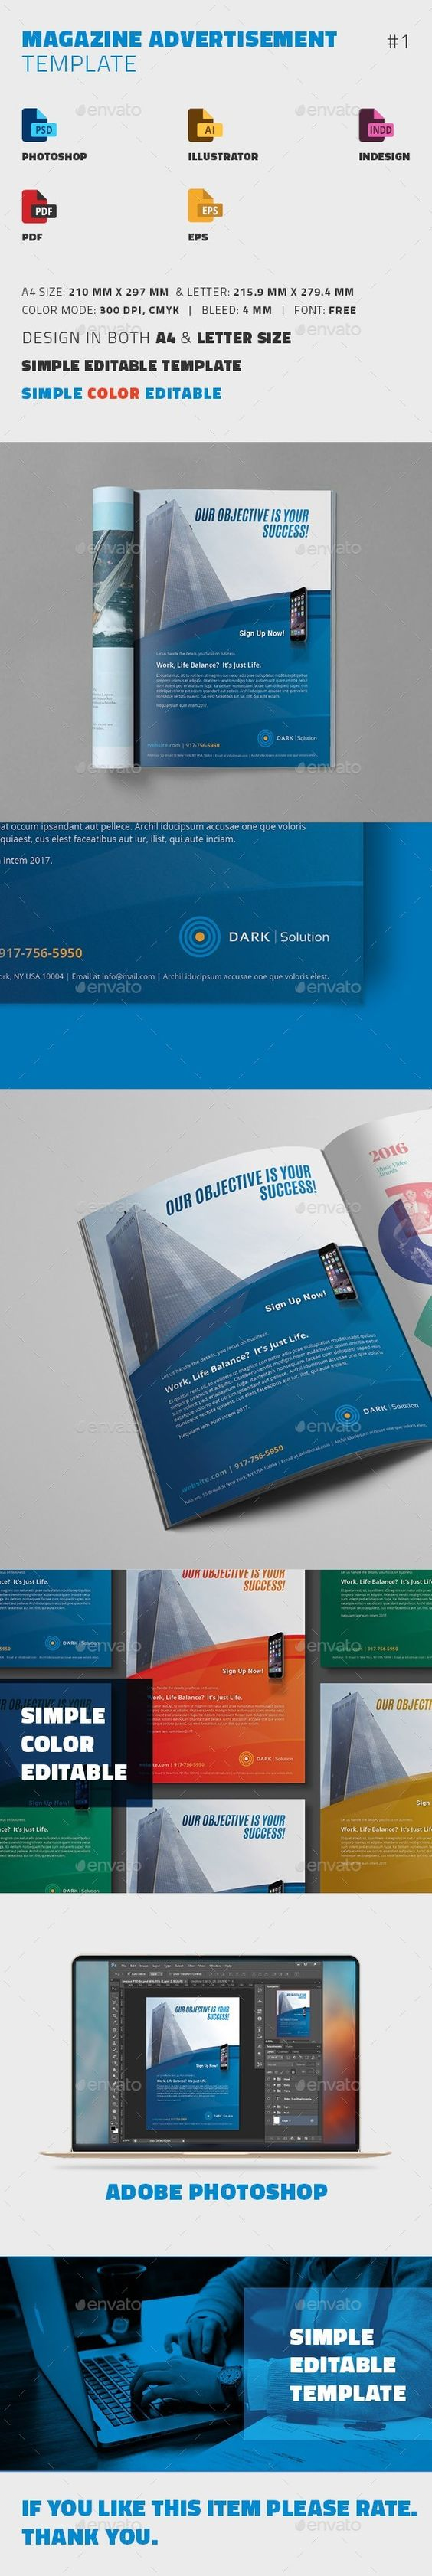 magazine advertisement template advertisement template creative magazine advertisement template